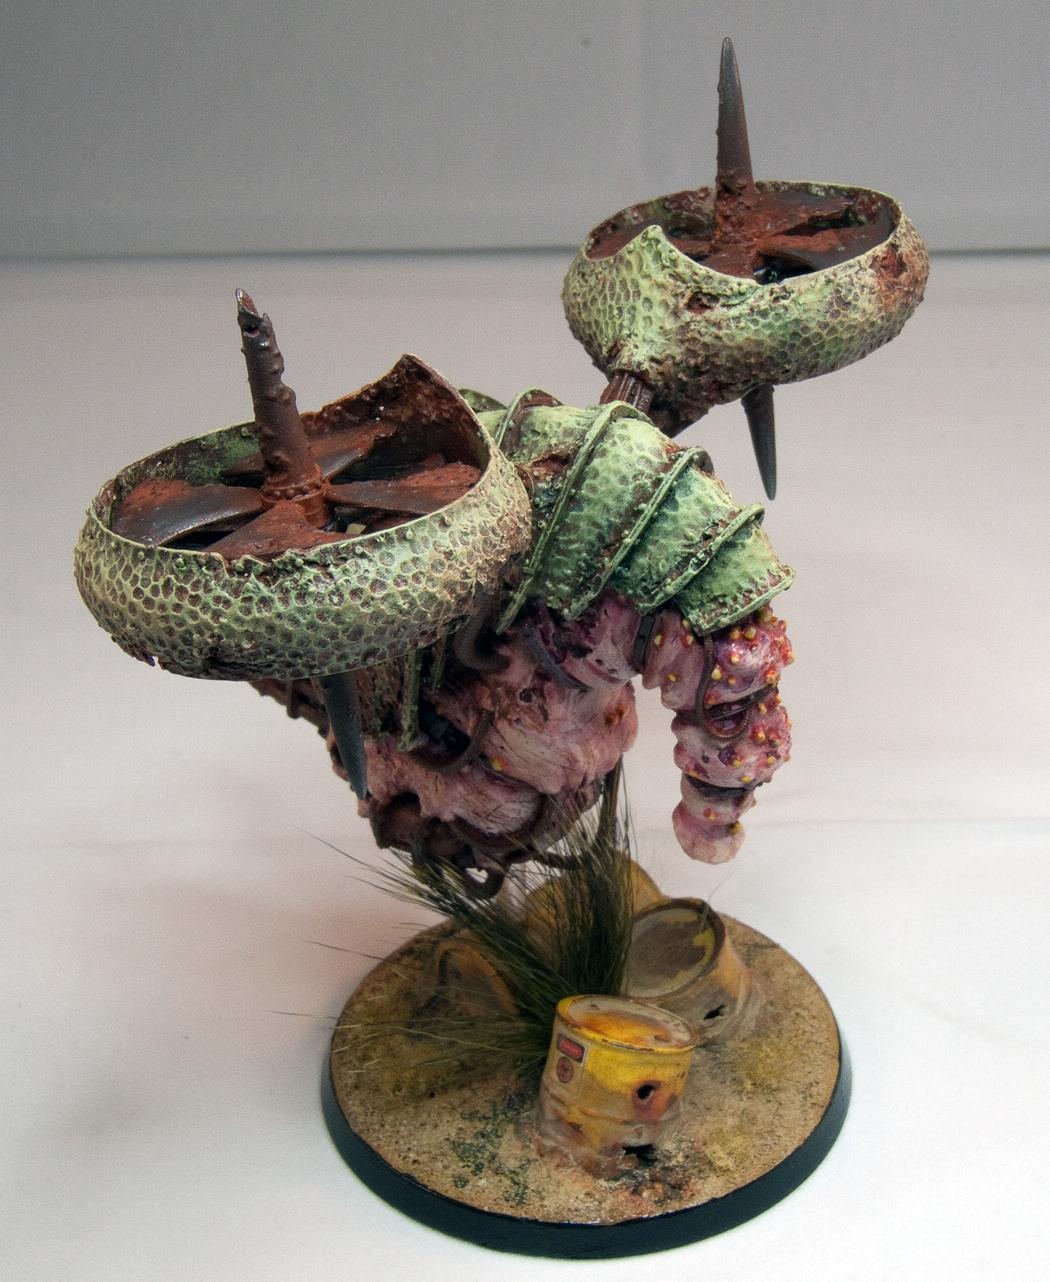 Blight Drone, Forge World, Nurgle, Warhammer 40,000